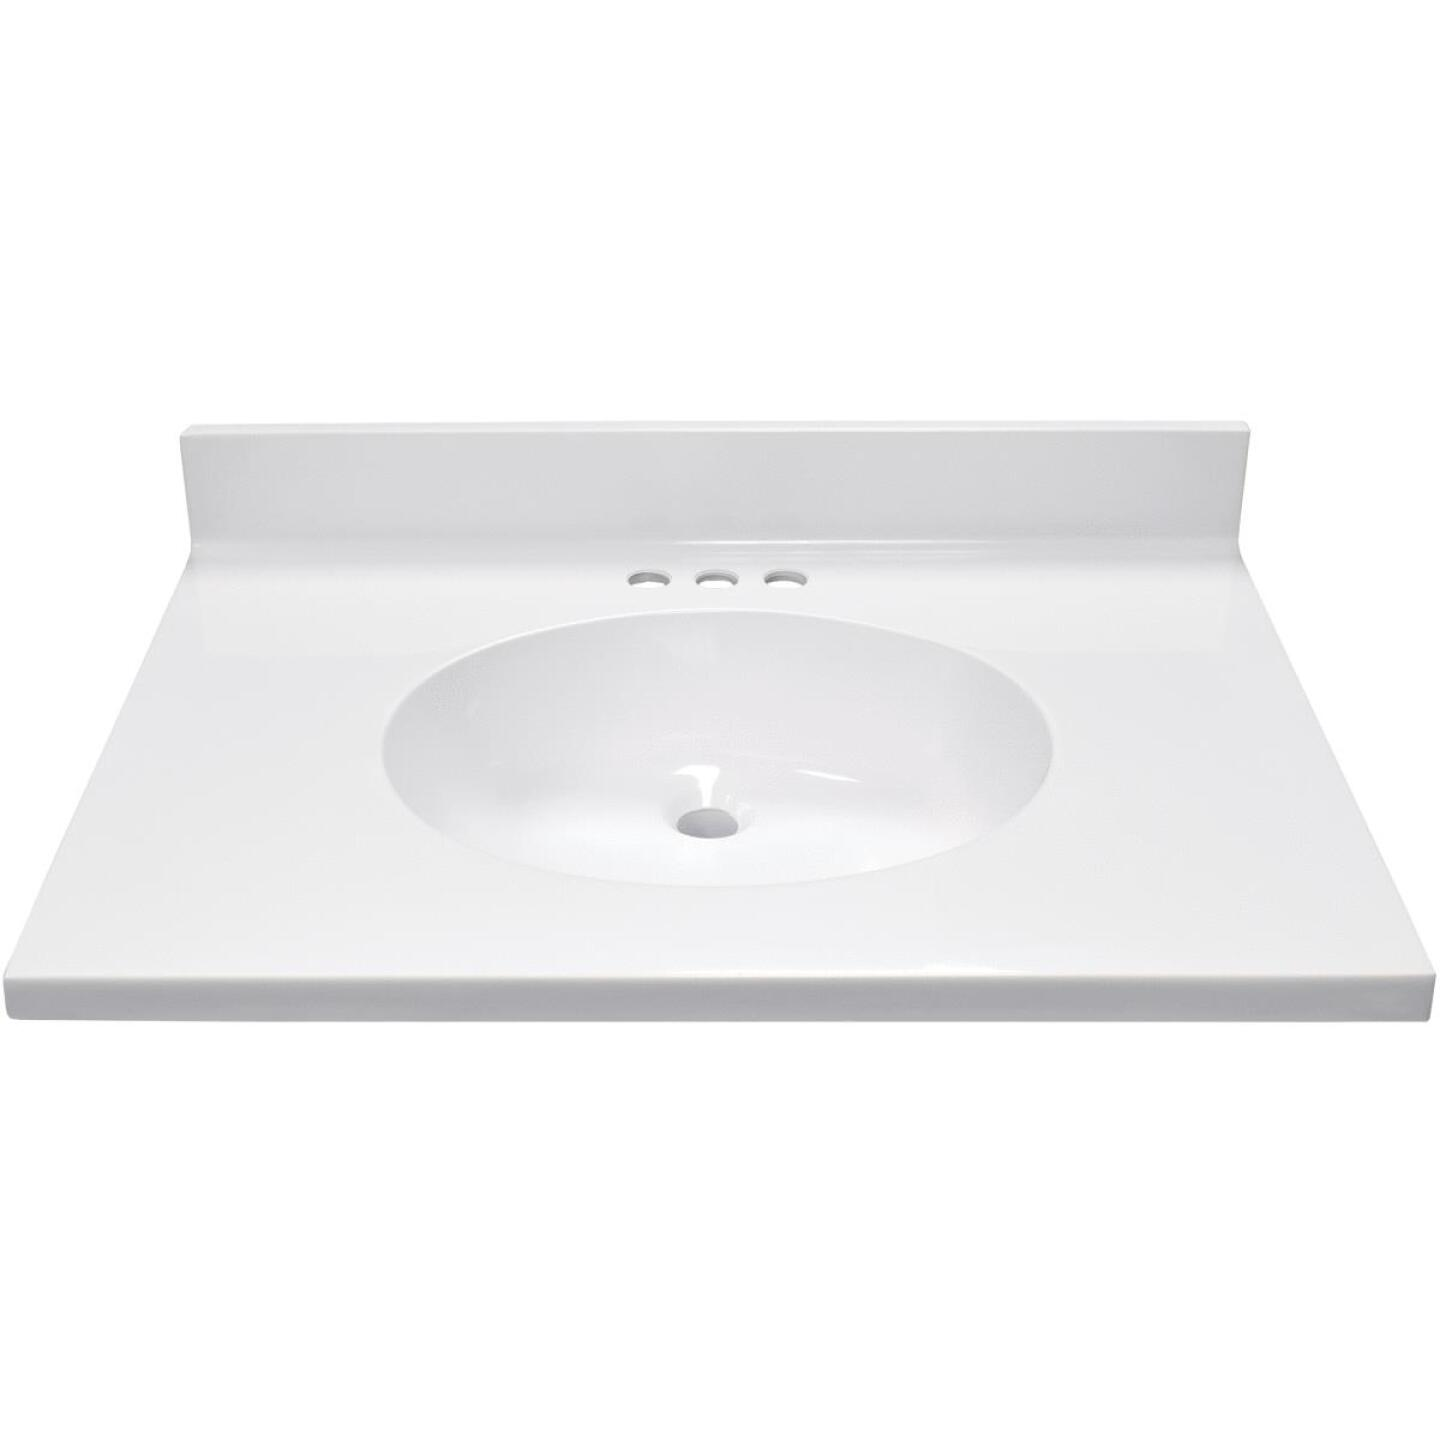 Modular Vanity Tops 31 In. W x 22 In. D Solid White Cultured Marble Vanity Top with Oval Bowl Image 2